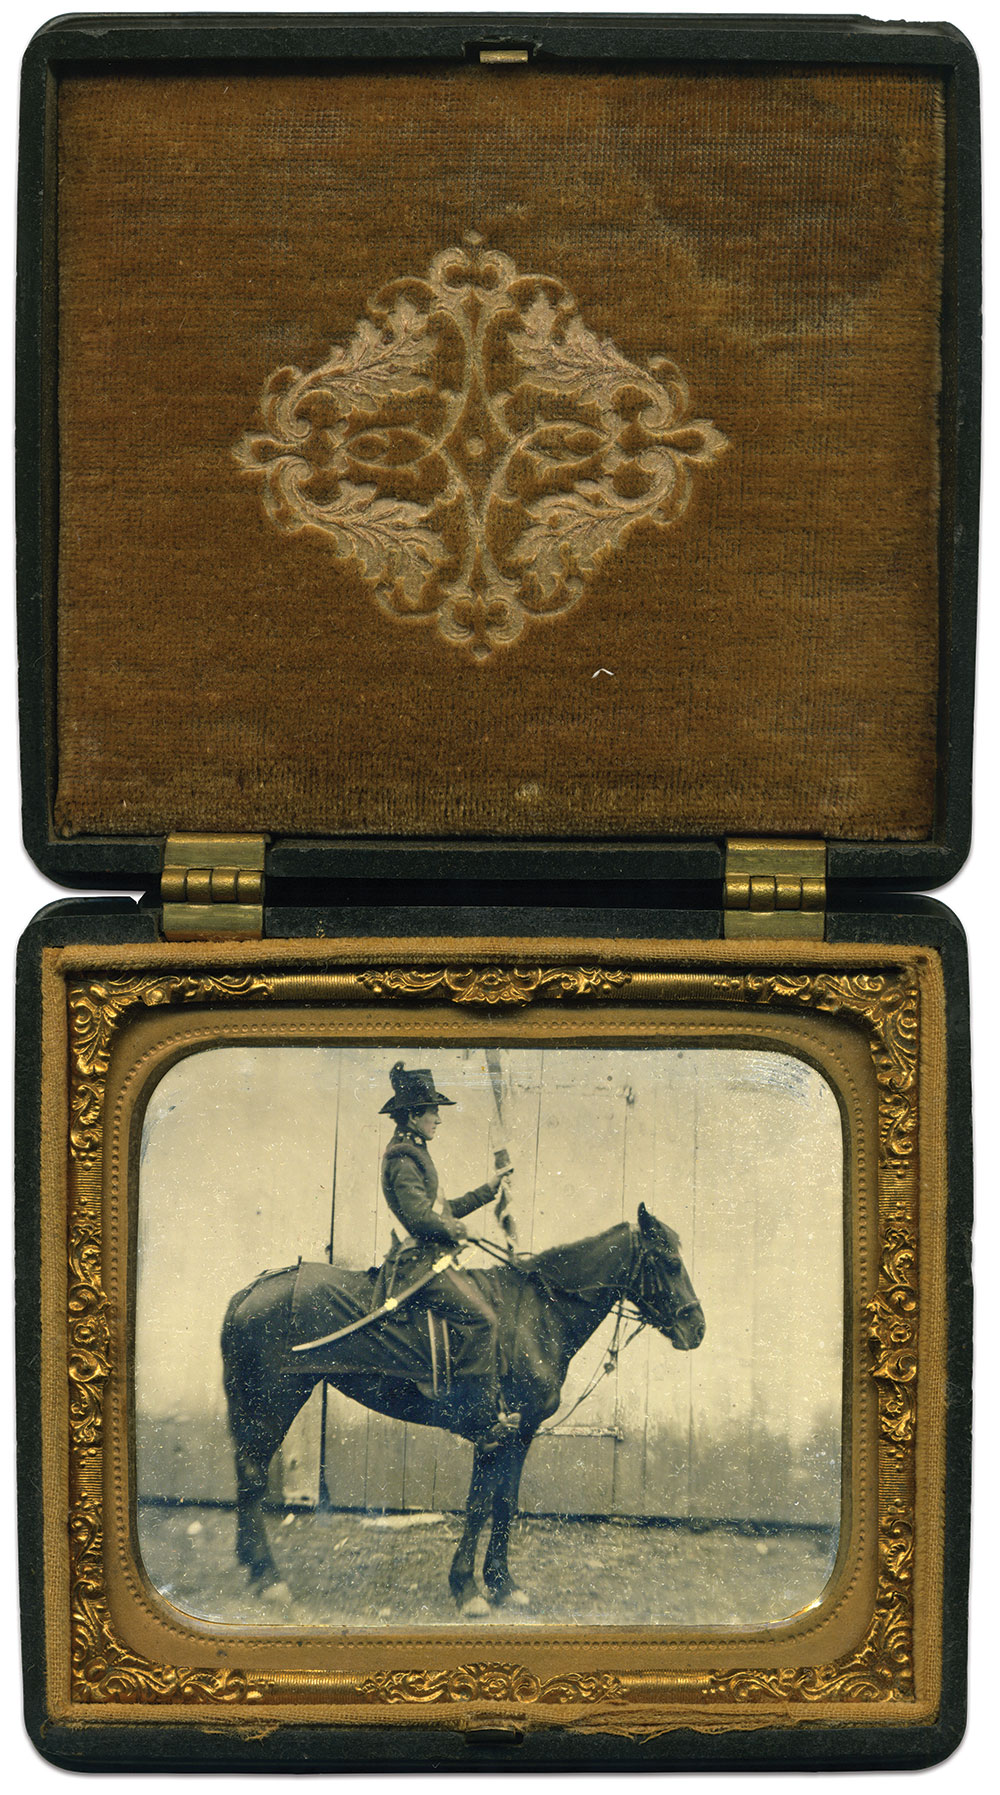 Sixth-plate tintype by an anonymous photographer.